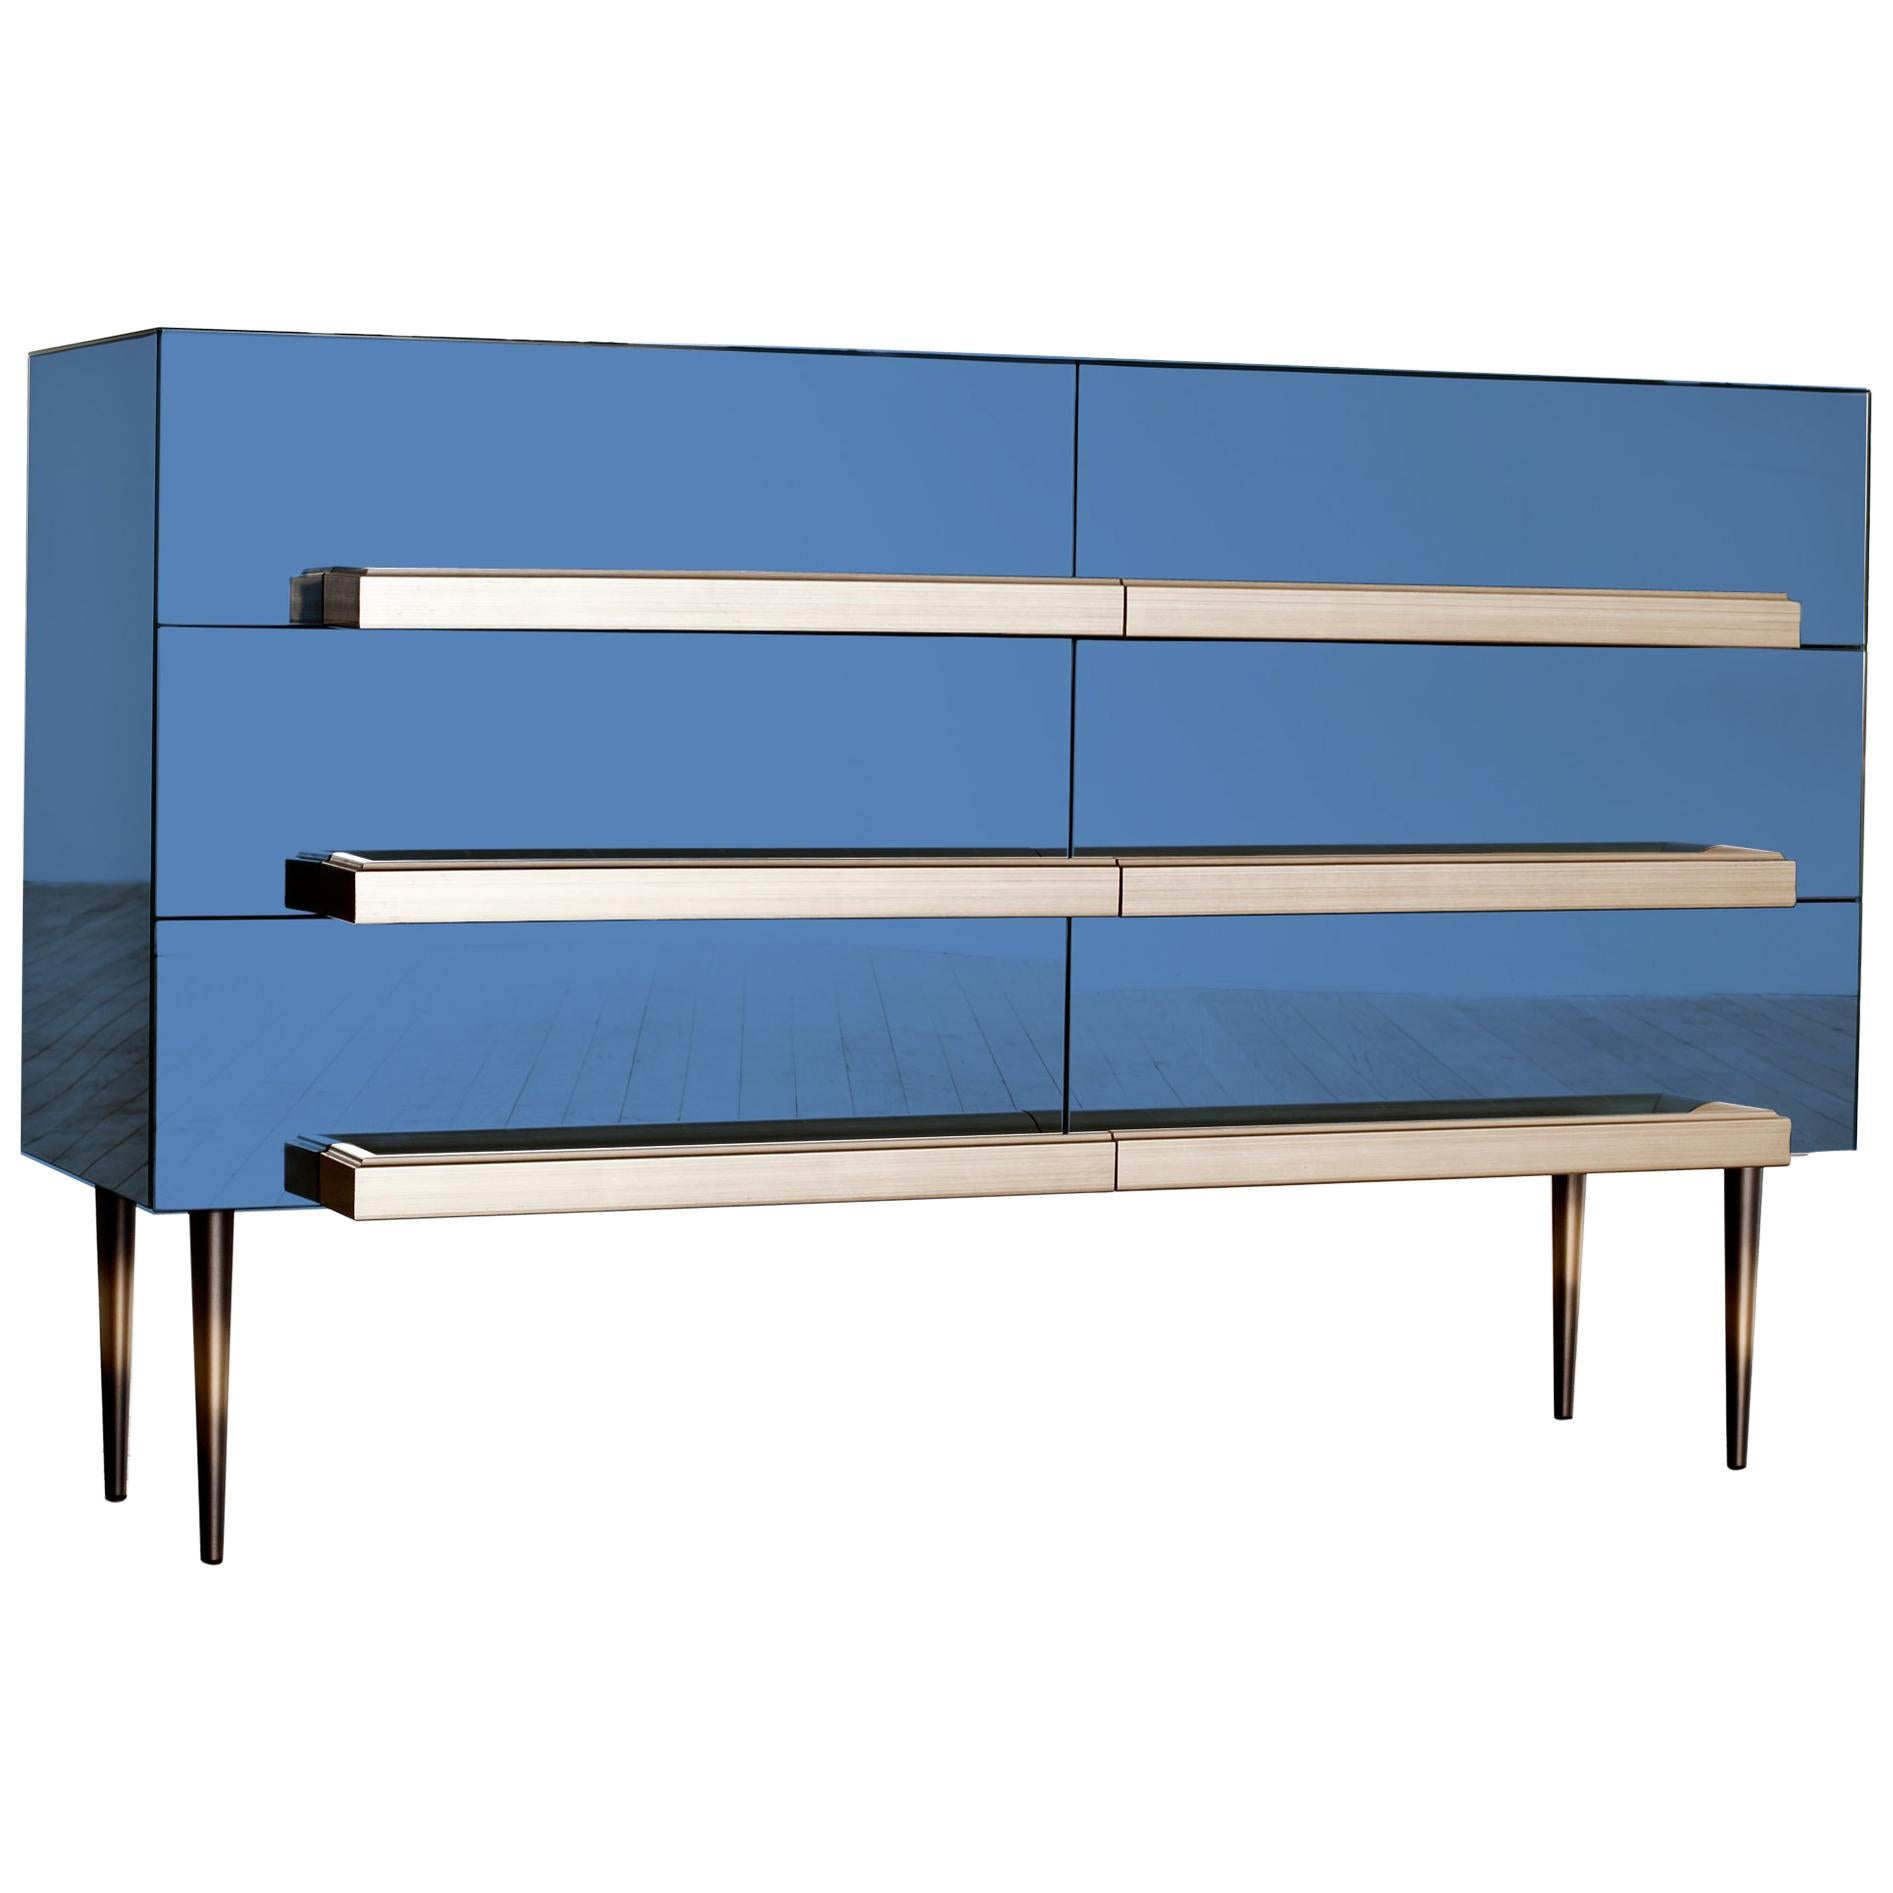 Contemporary Blue Mirrored Credenza with Champagne Molding Handles by Luis Pons